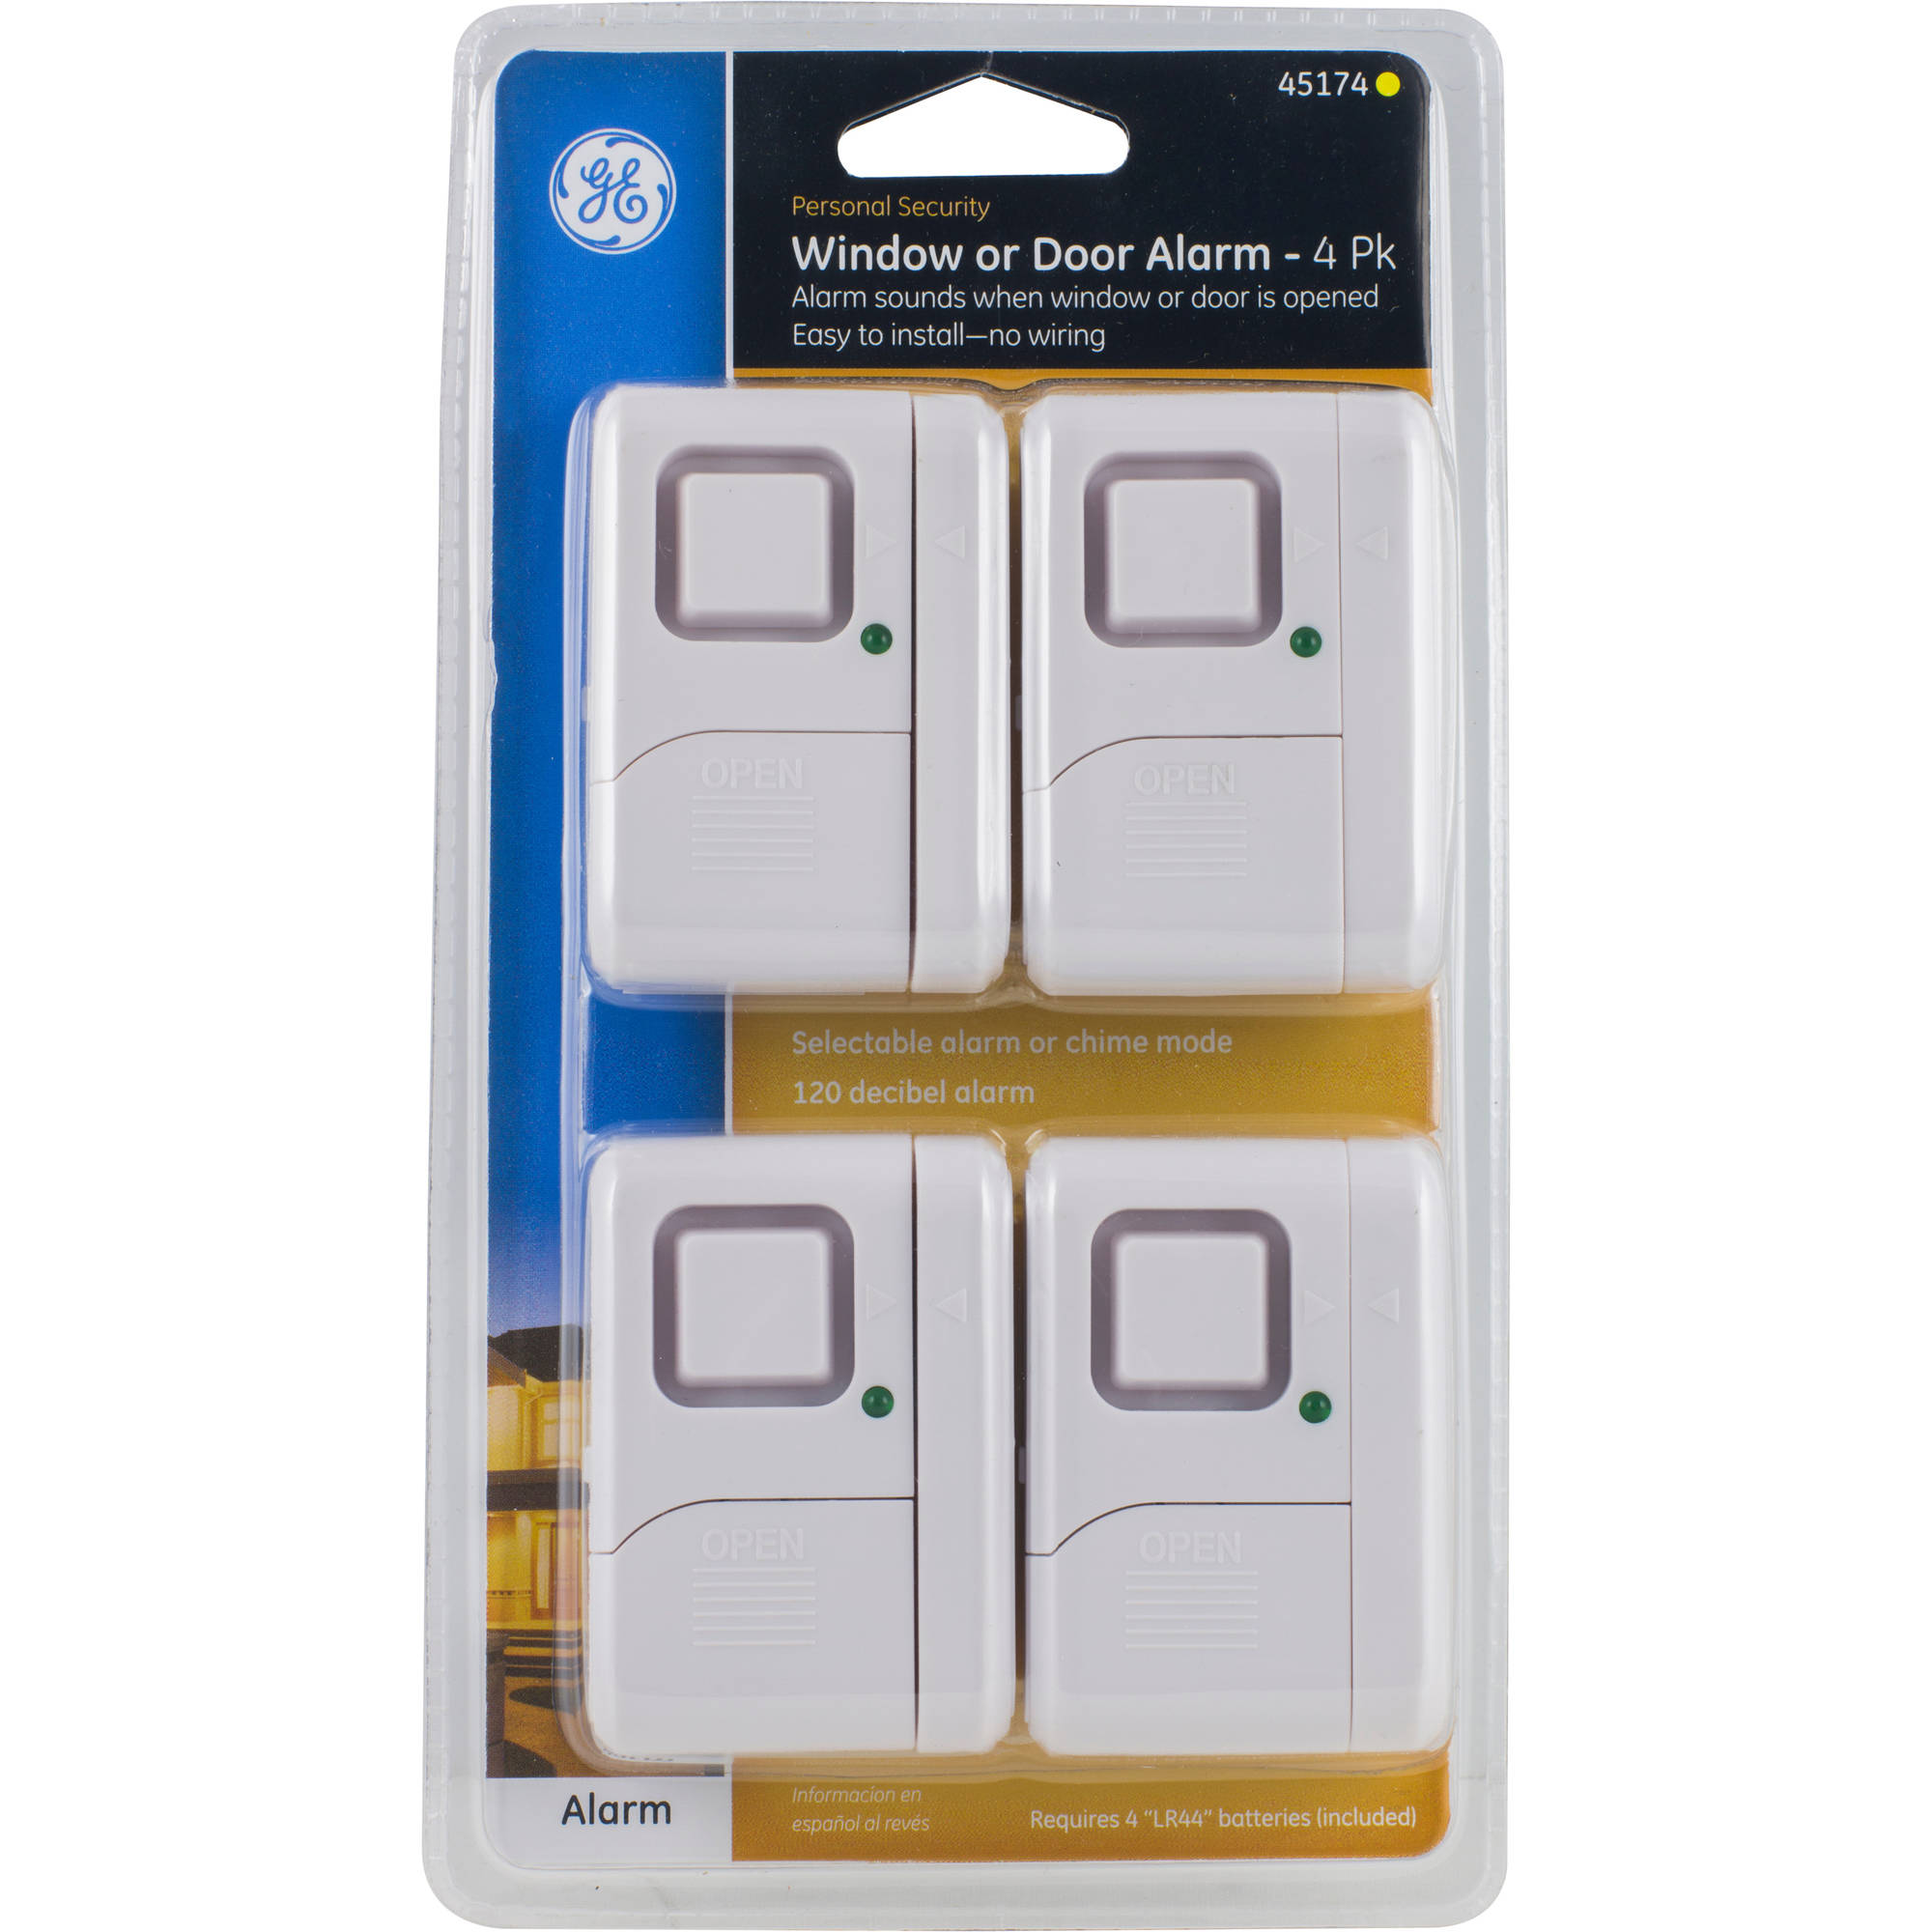 GE Personal Security Window/Door Alarm, 4 Pack   Walmart.com